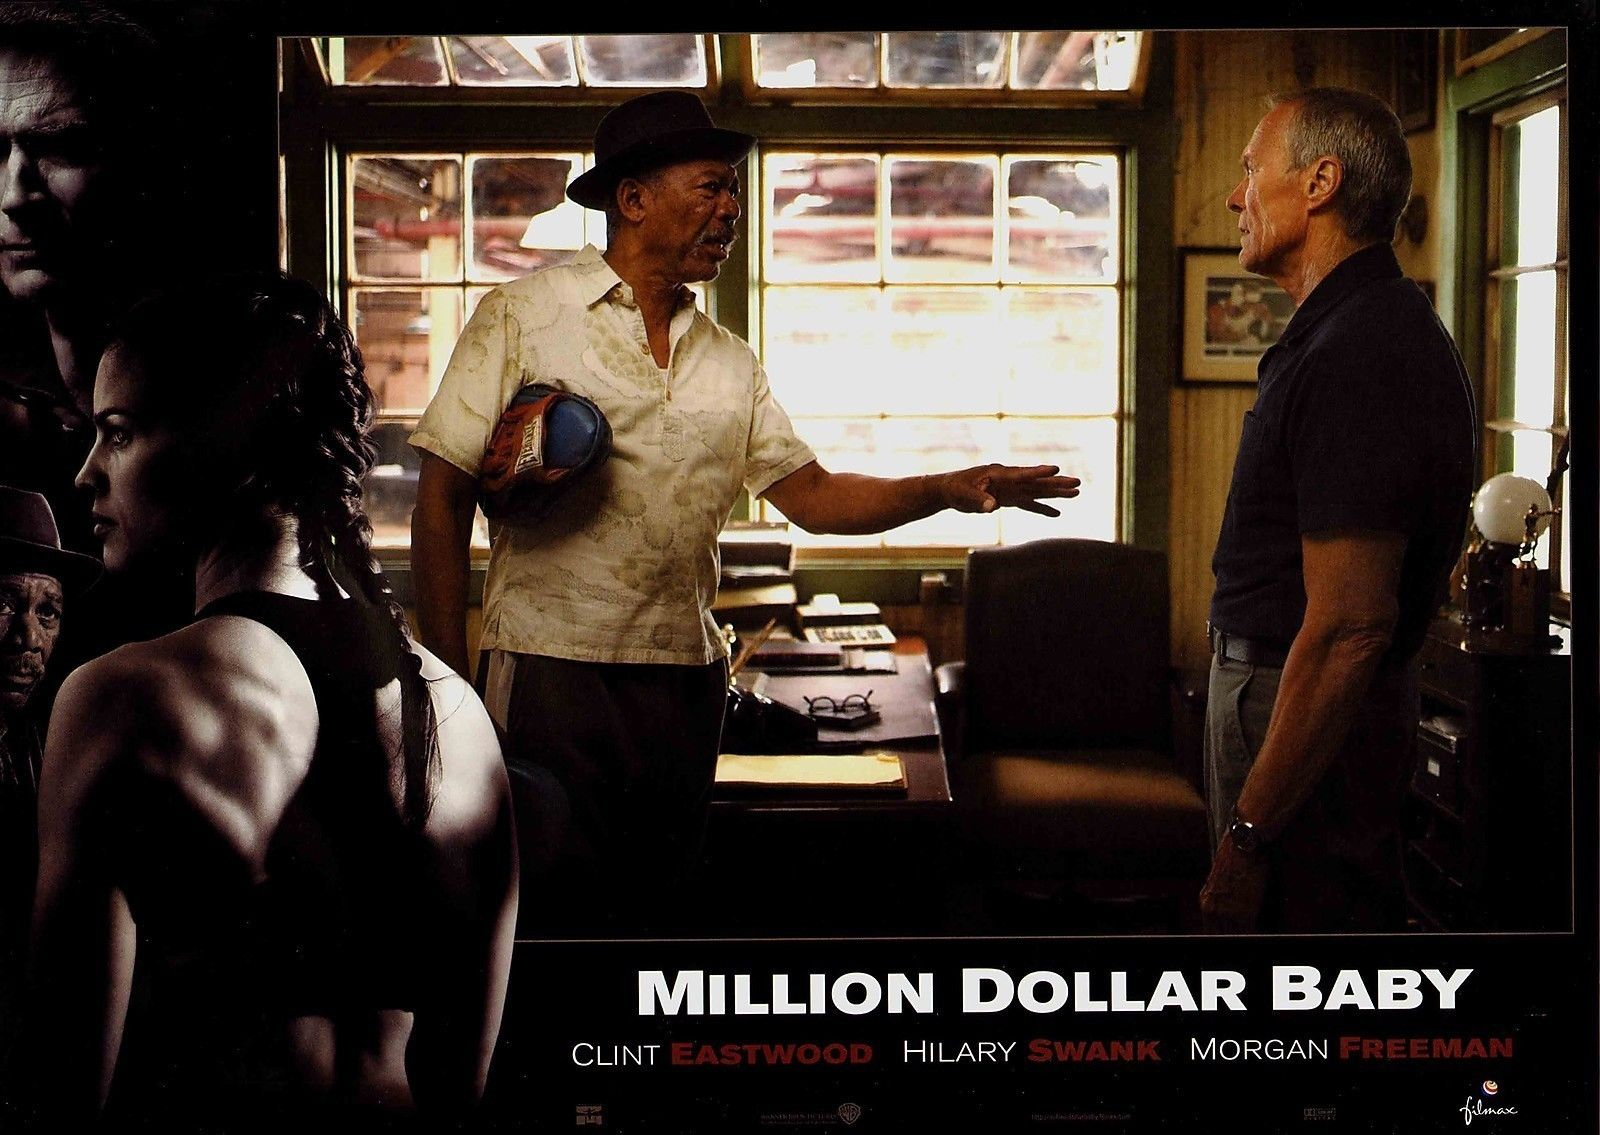 million dollar baby by clint eastwood